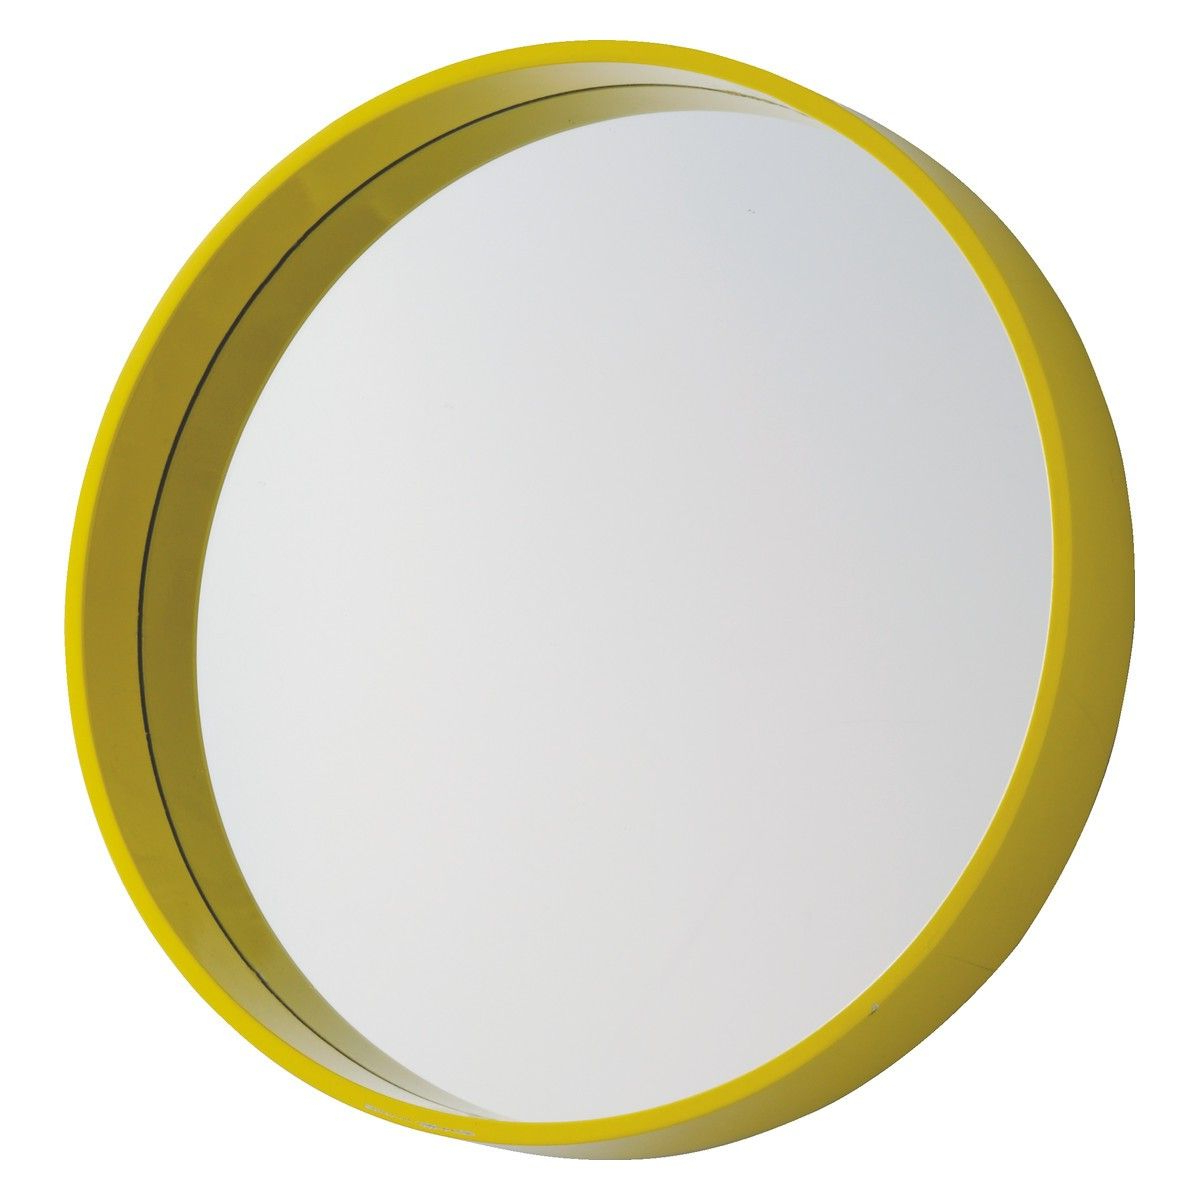 Aimee Yellow Round Wall Mirror D41Cm (View 1 of 20)